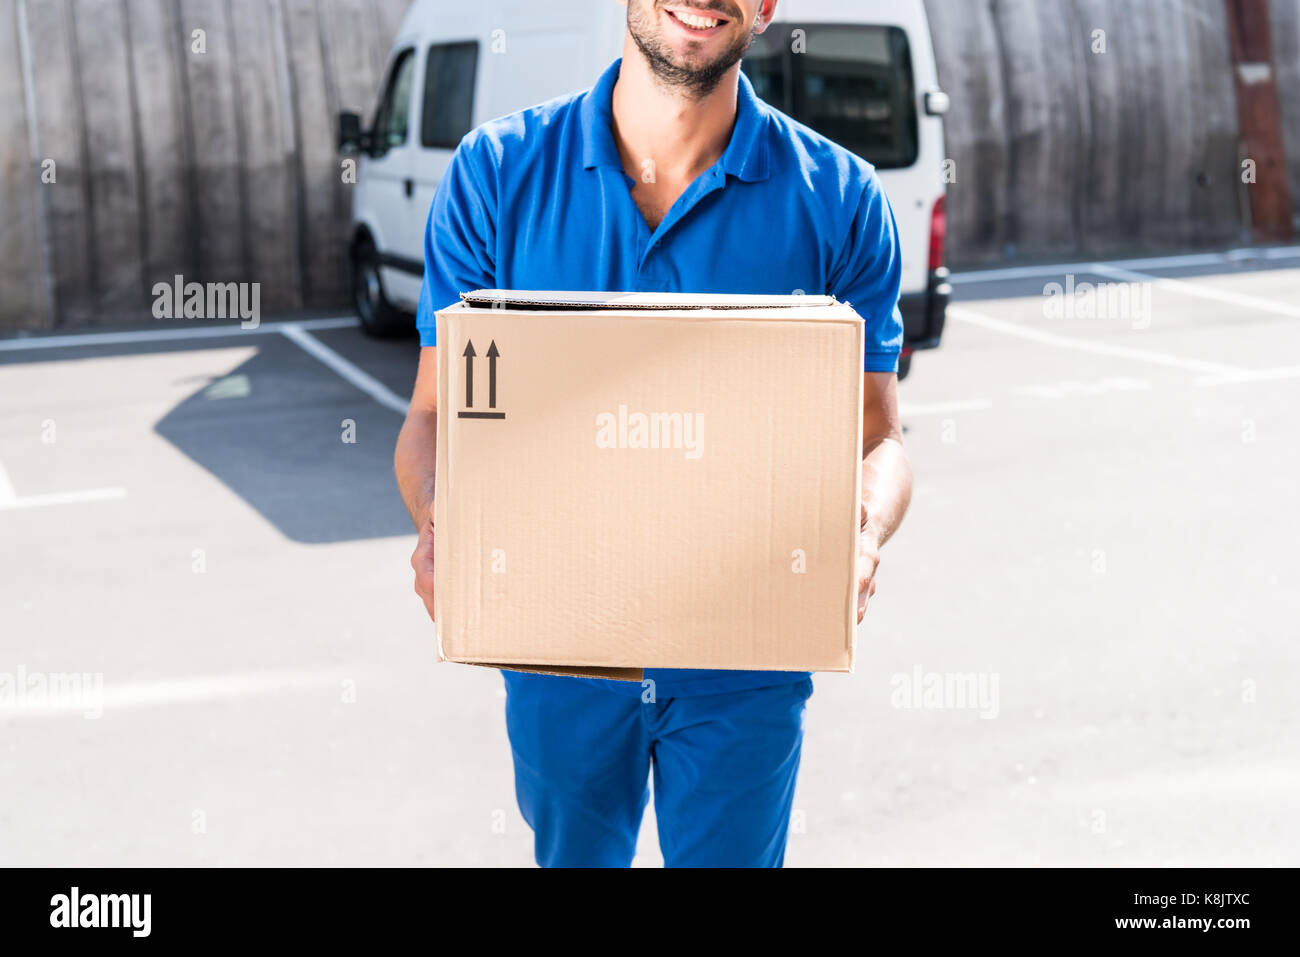 delivery man with cardboard box - Stock Image